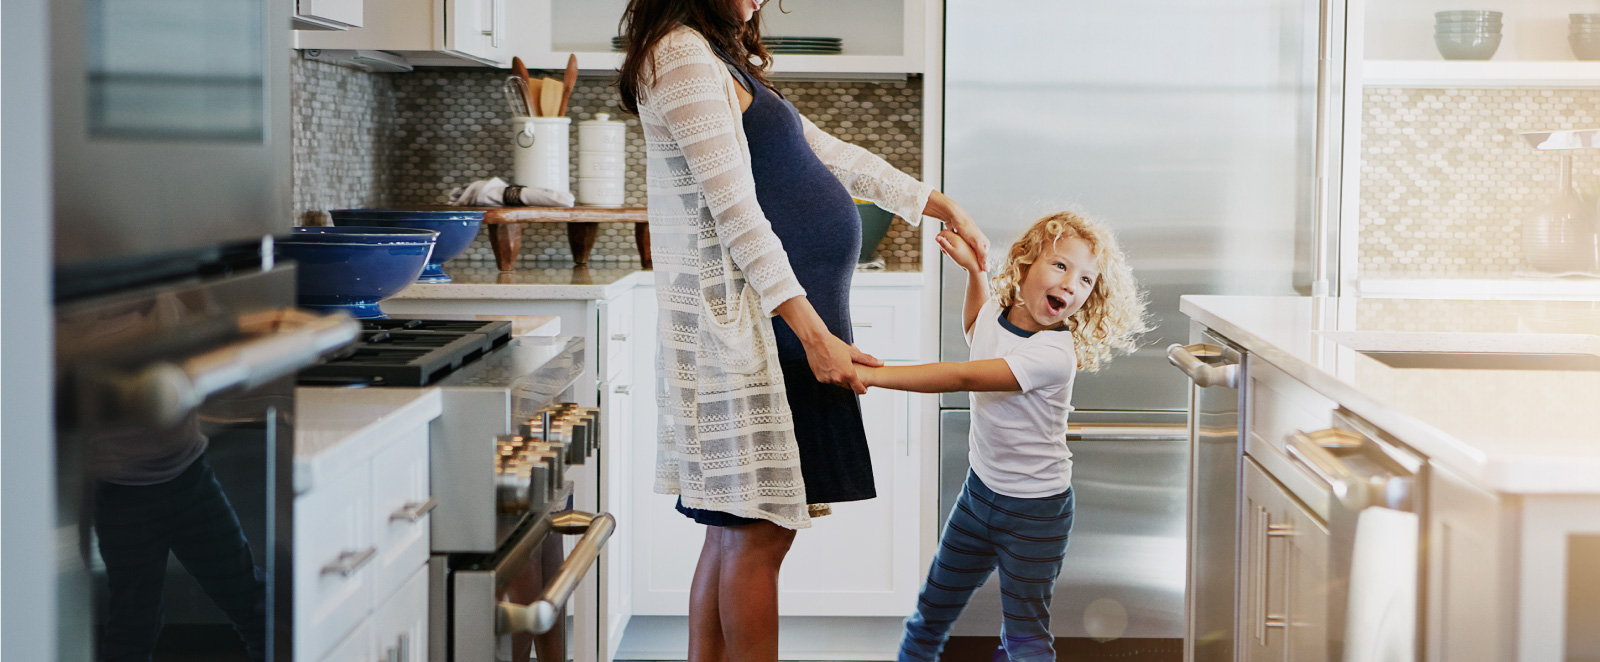 A mother and child happily dancing in a kitchen